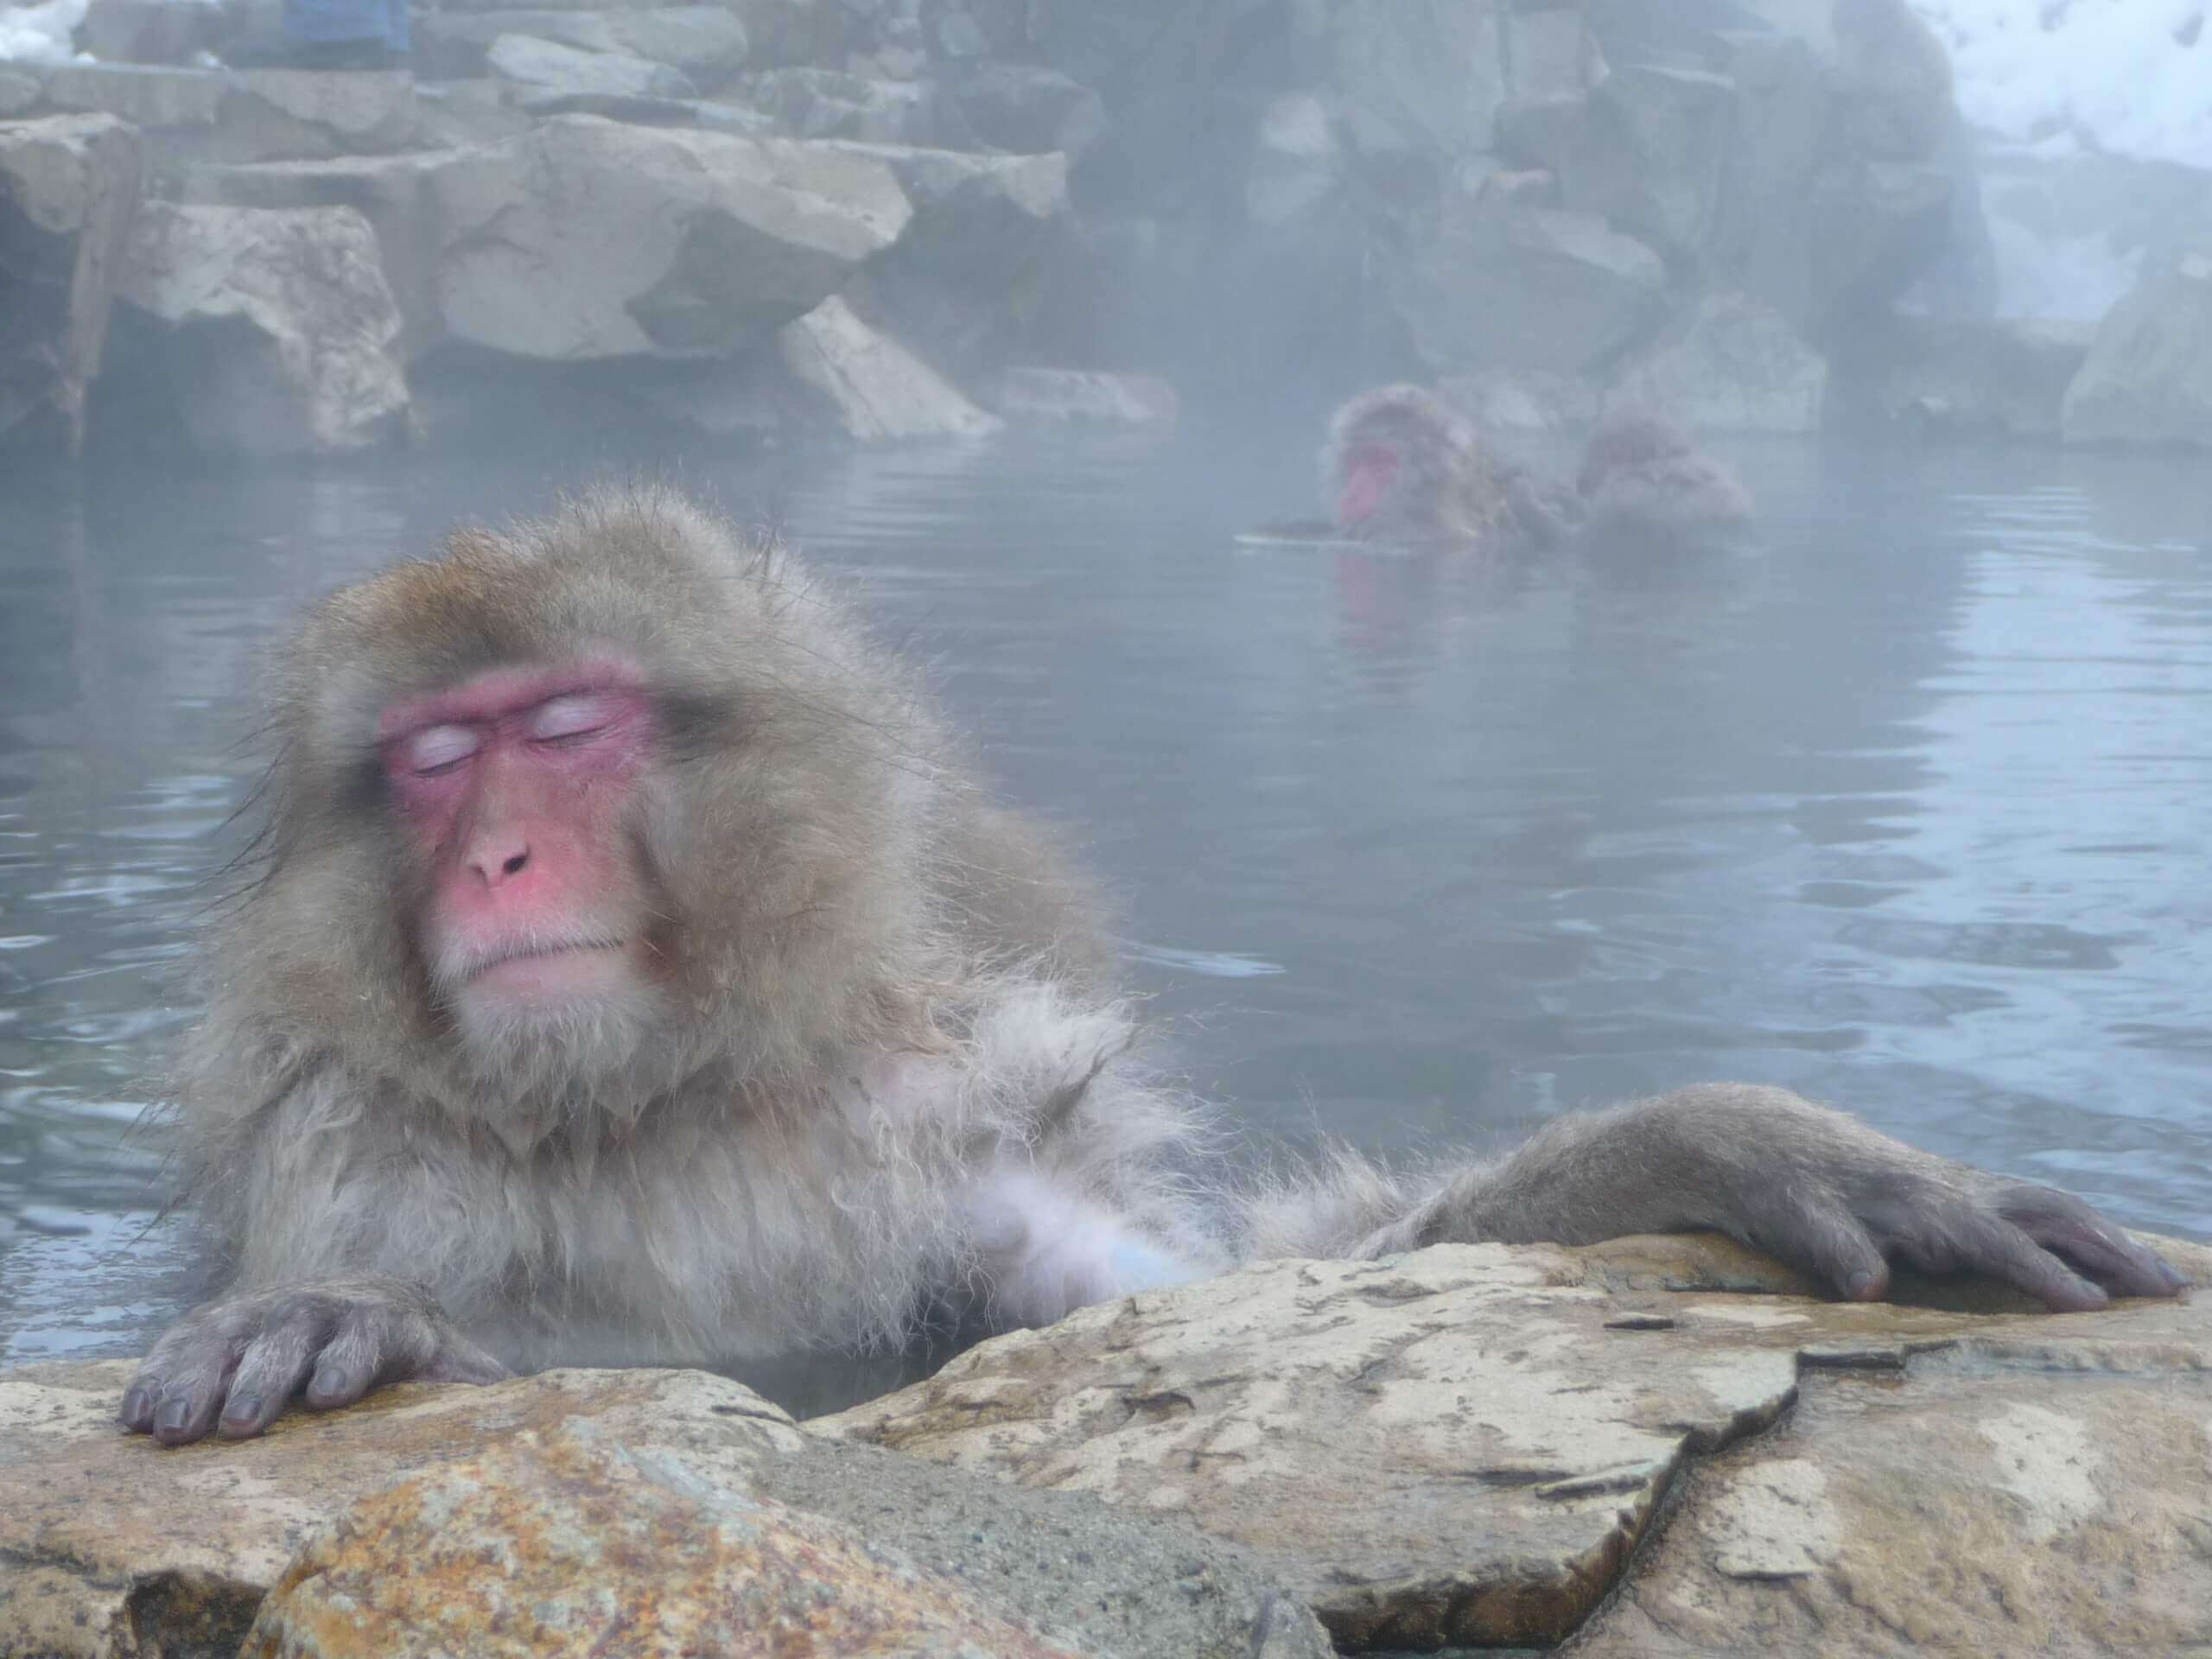 A monkey relaxes in a hot spring in Japan